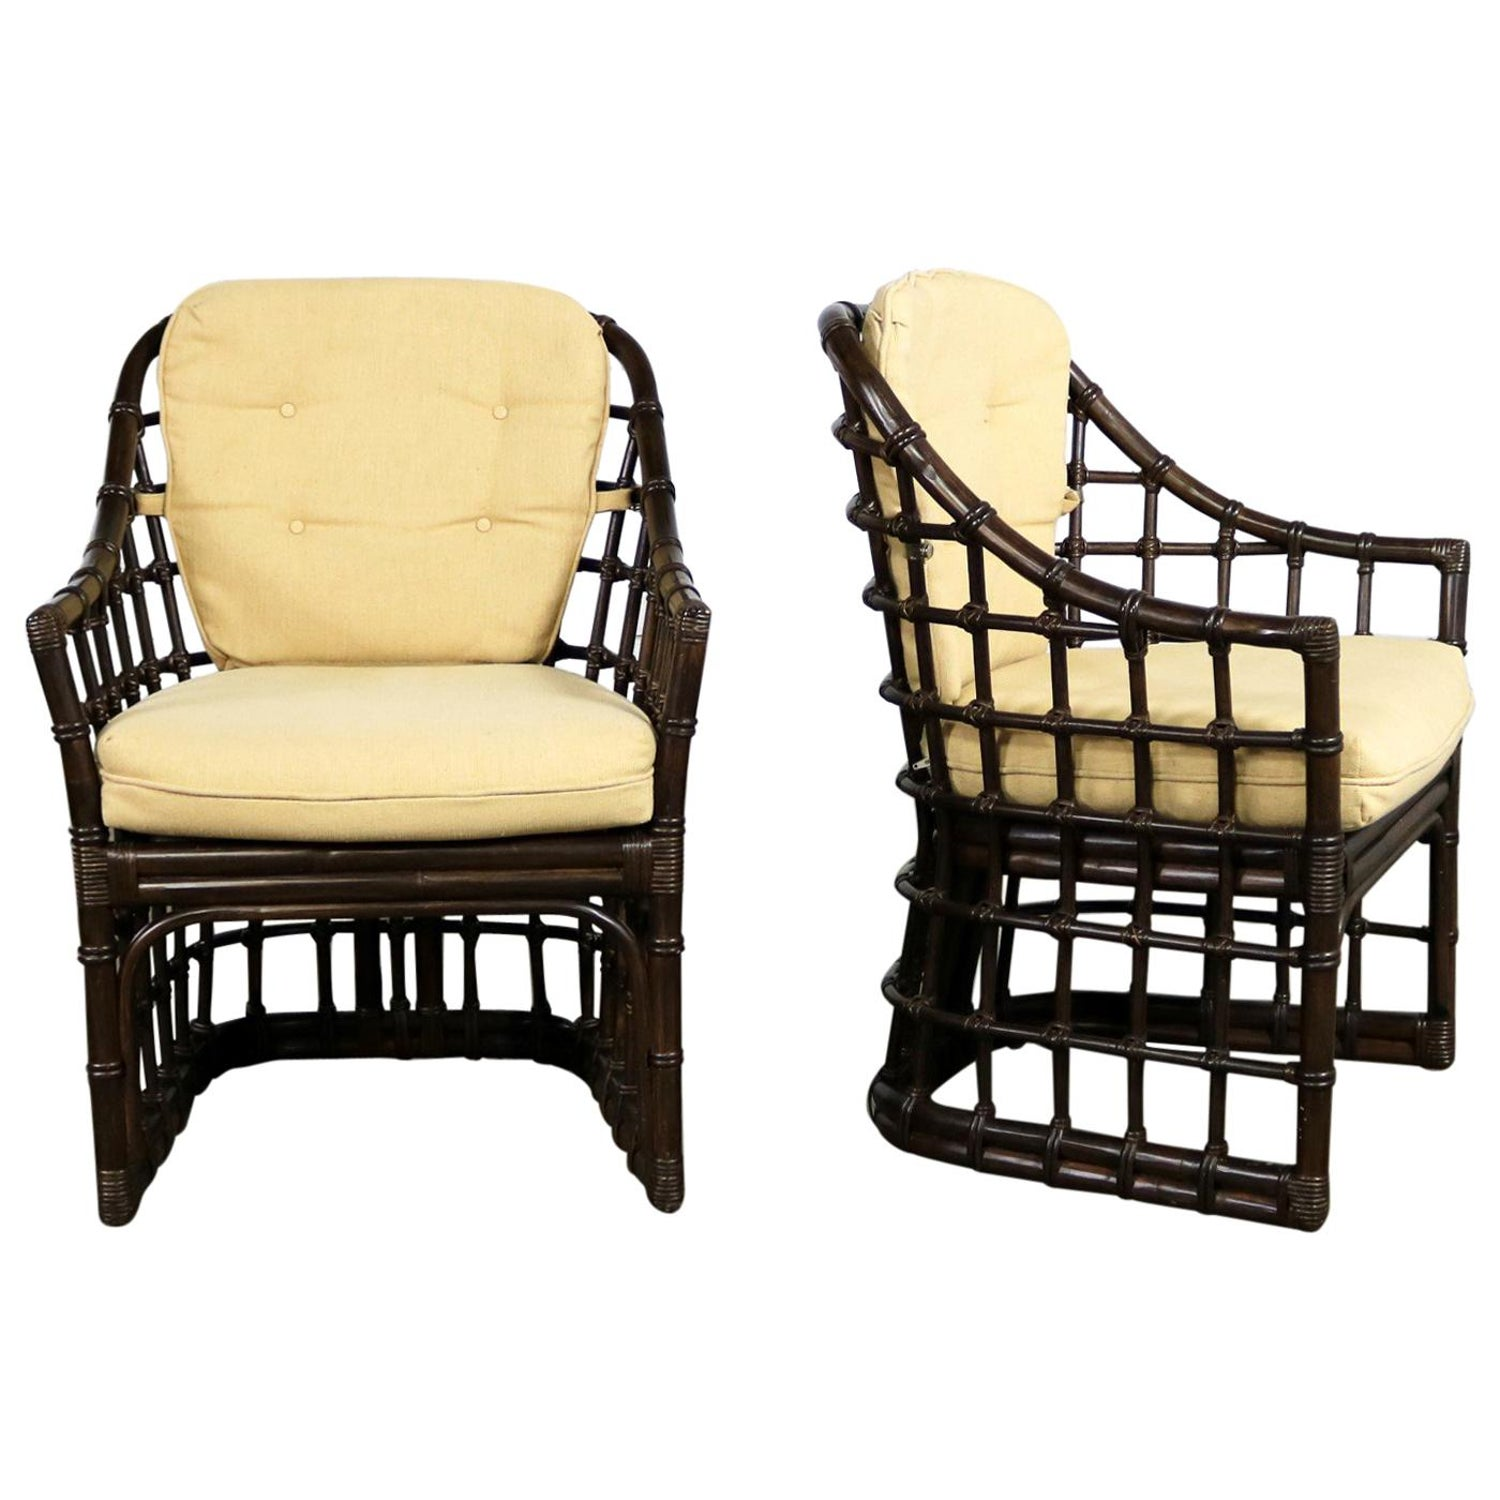 Brown jordan windowpane dark brown rattan lounge chairs with straw color cushion for sale at 1stdibs